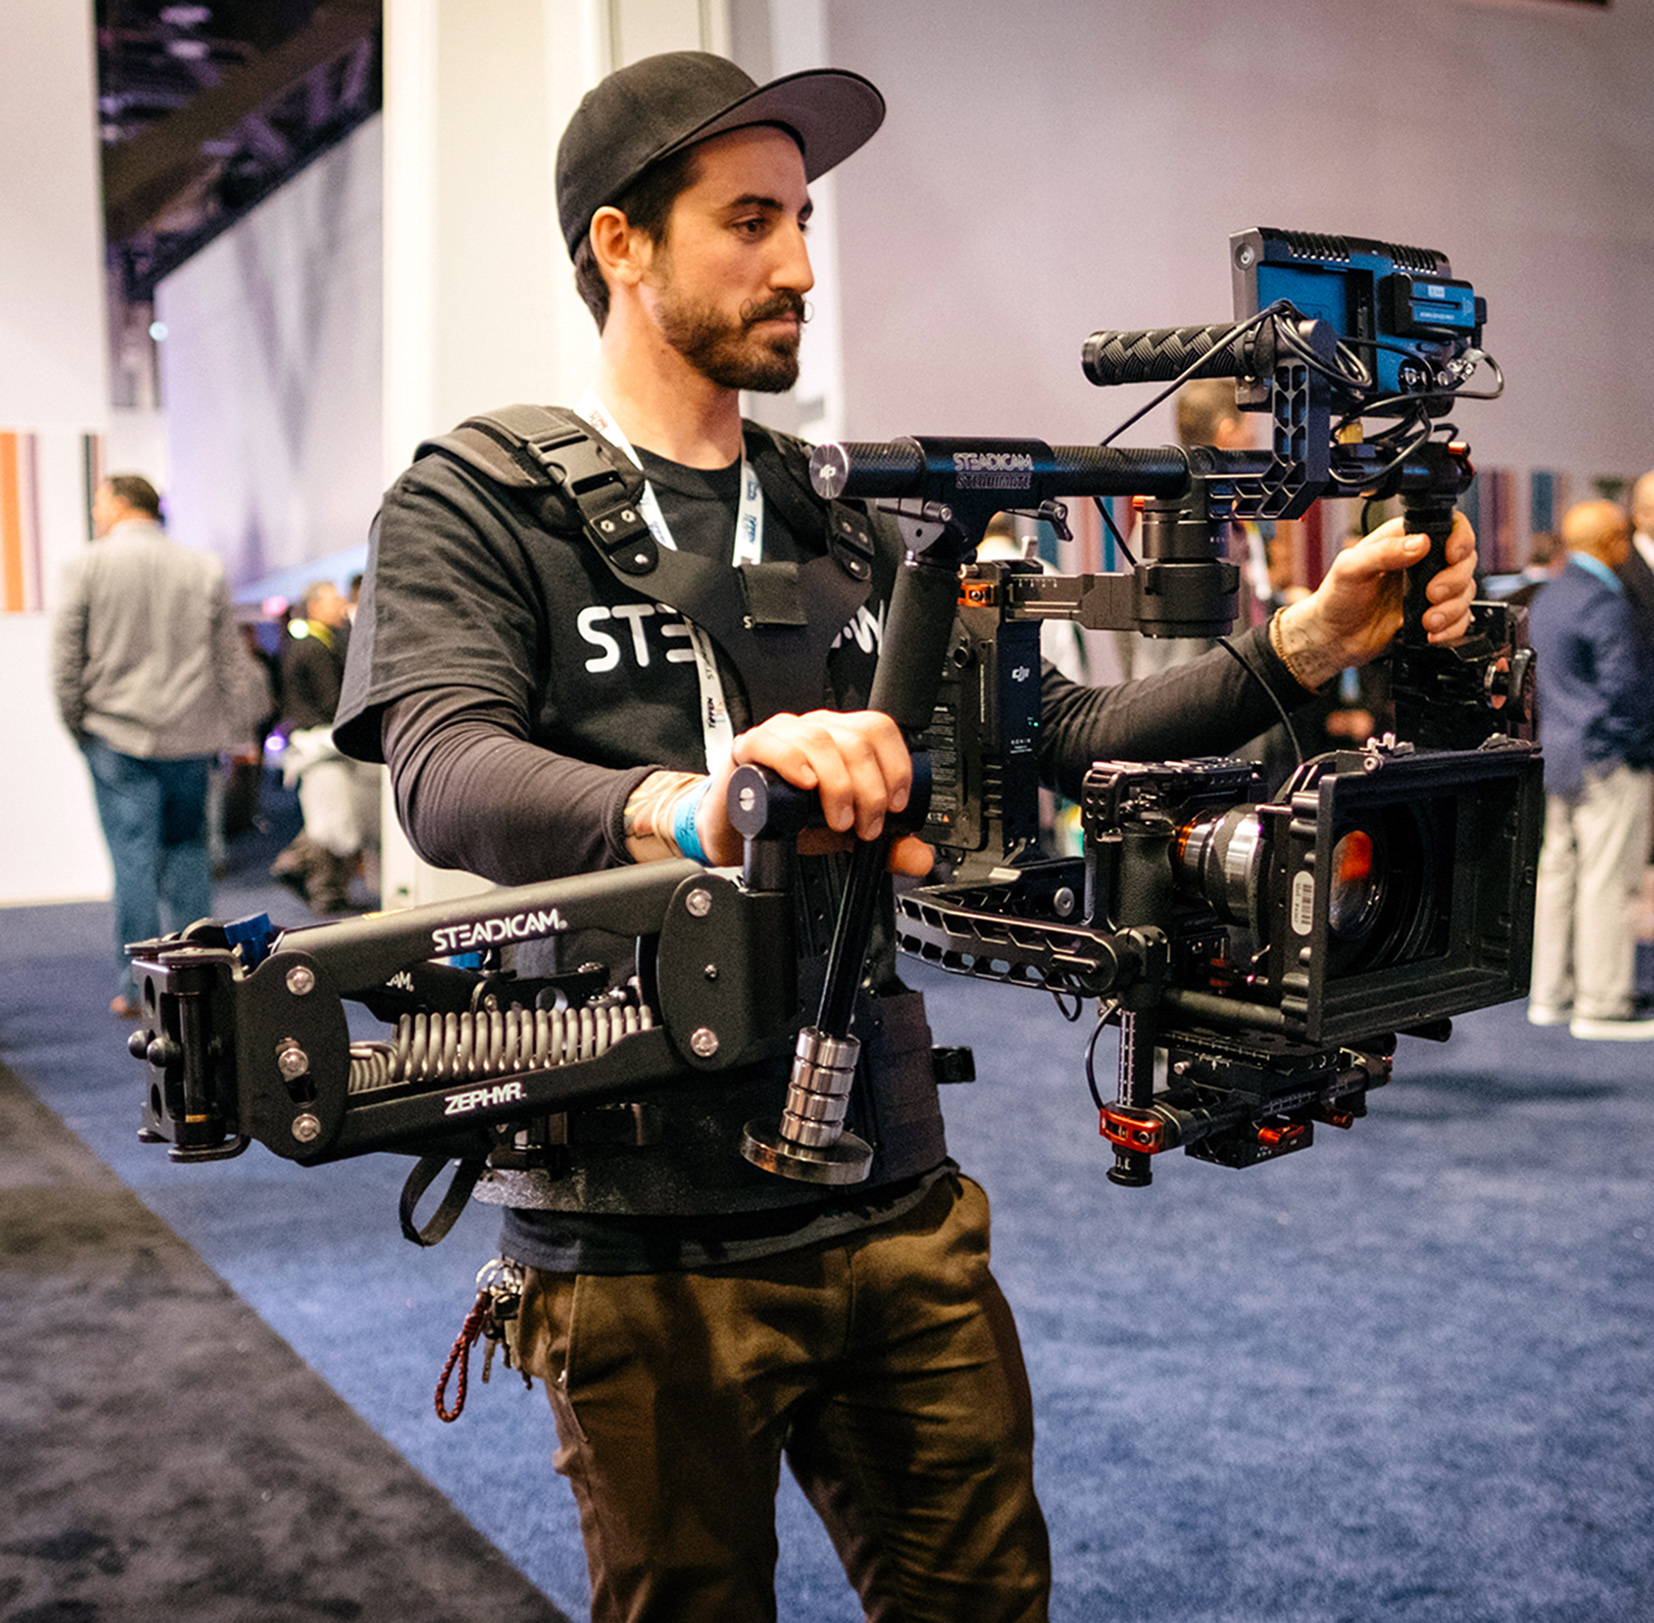 The new Steadimate arm and vest makes using a gimbal like the Ronin easier for longer times.